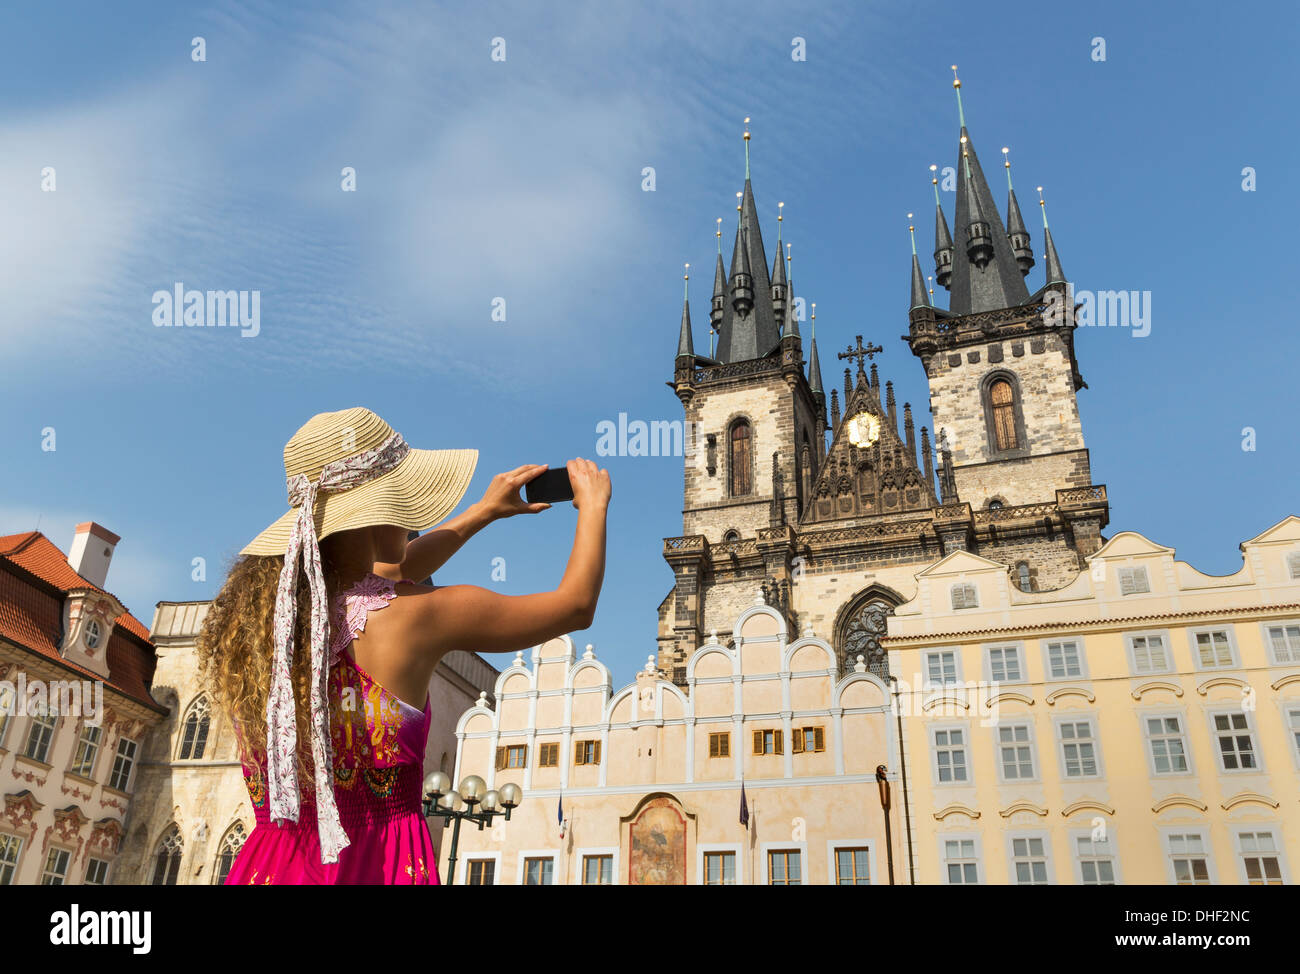 Teenage girl photographing Our Lady of Tyn church, Prague, Czech Republic - Stock Image